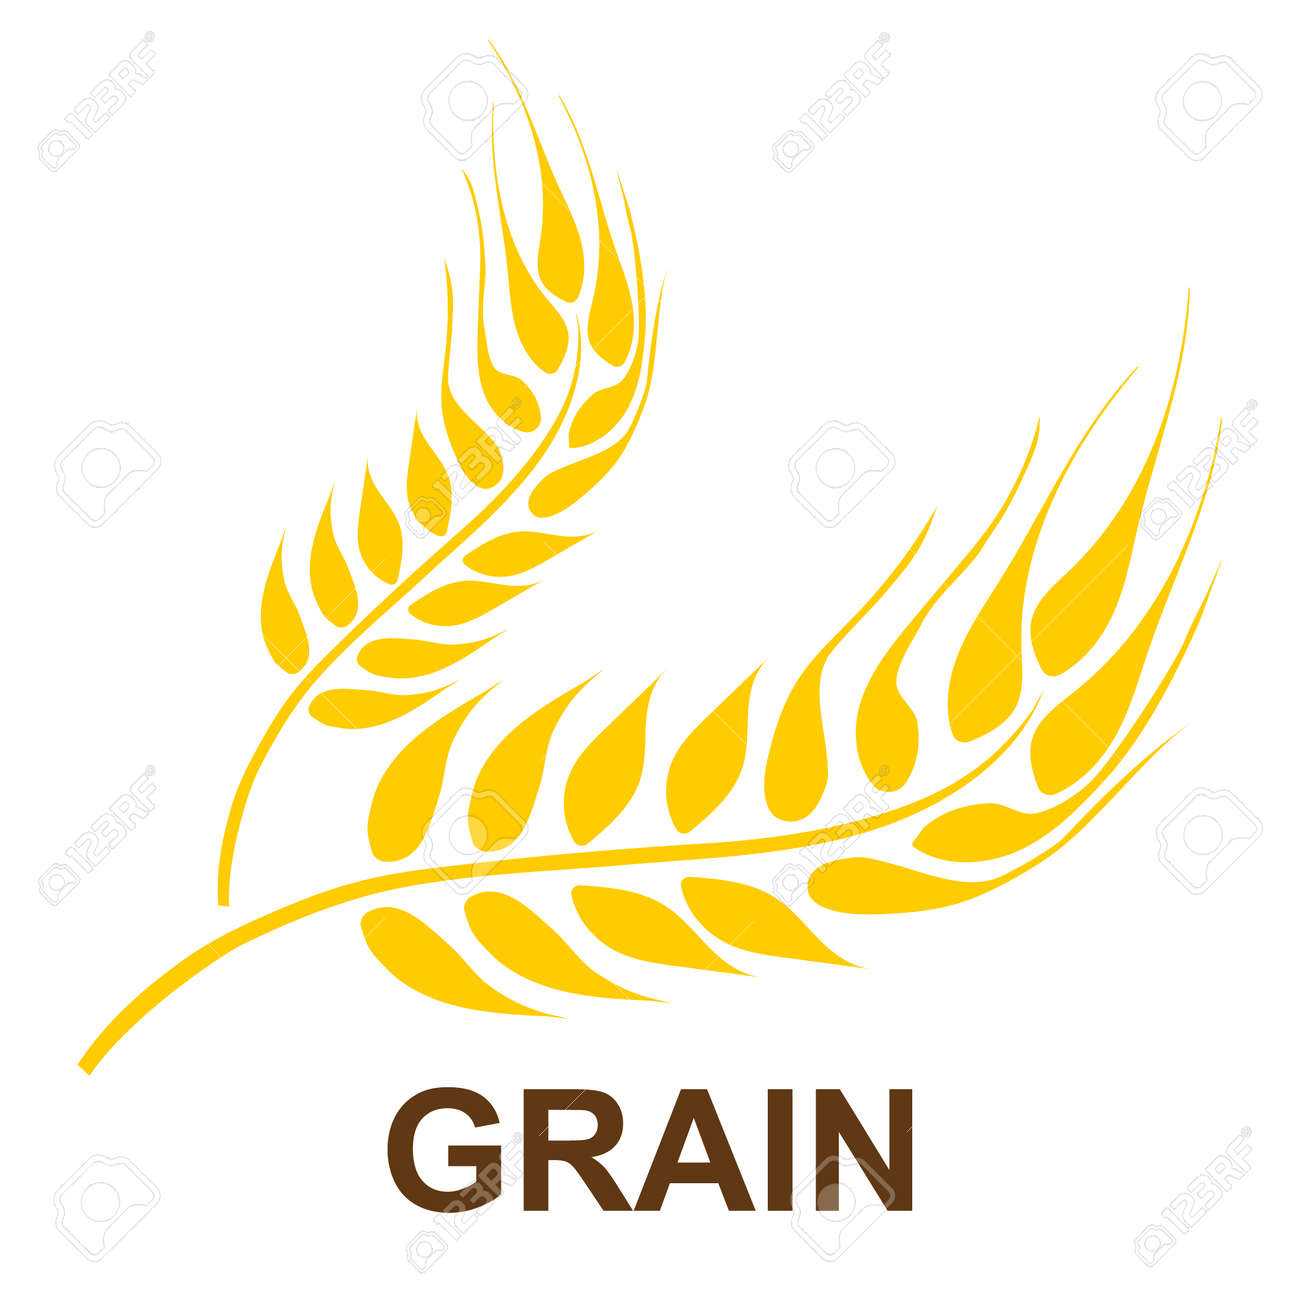 Ears of wheat. Background image of ears of wheat isolated on a white background. Vector illustration. Vector. - 162890946